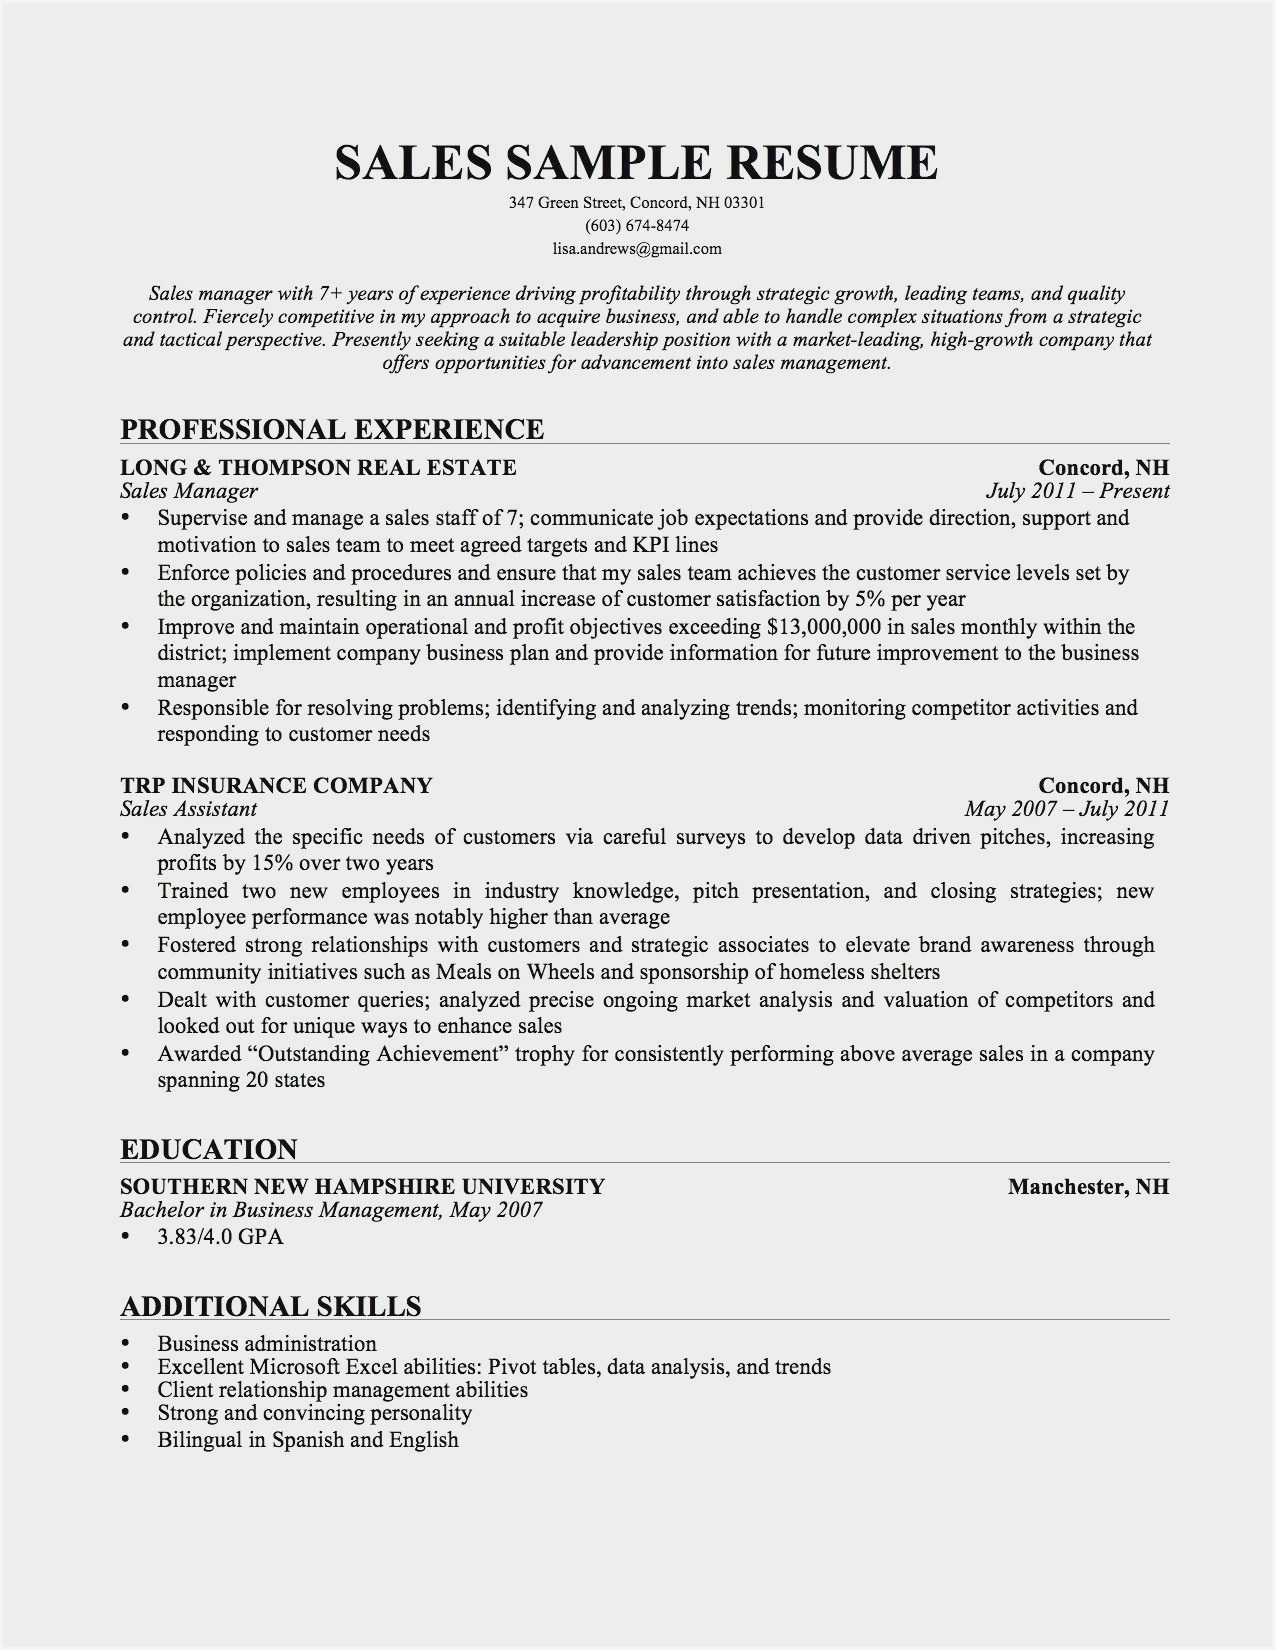 free healthcare administration resume samples sample management current examples quality Resume Healthcare Management Resume